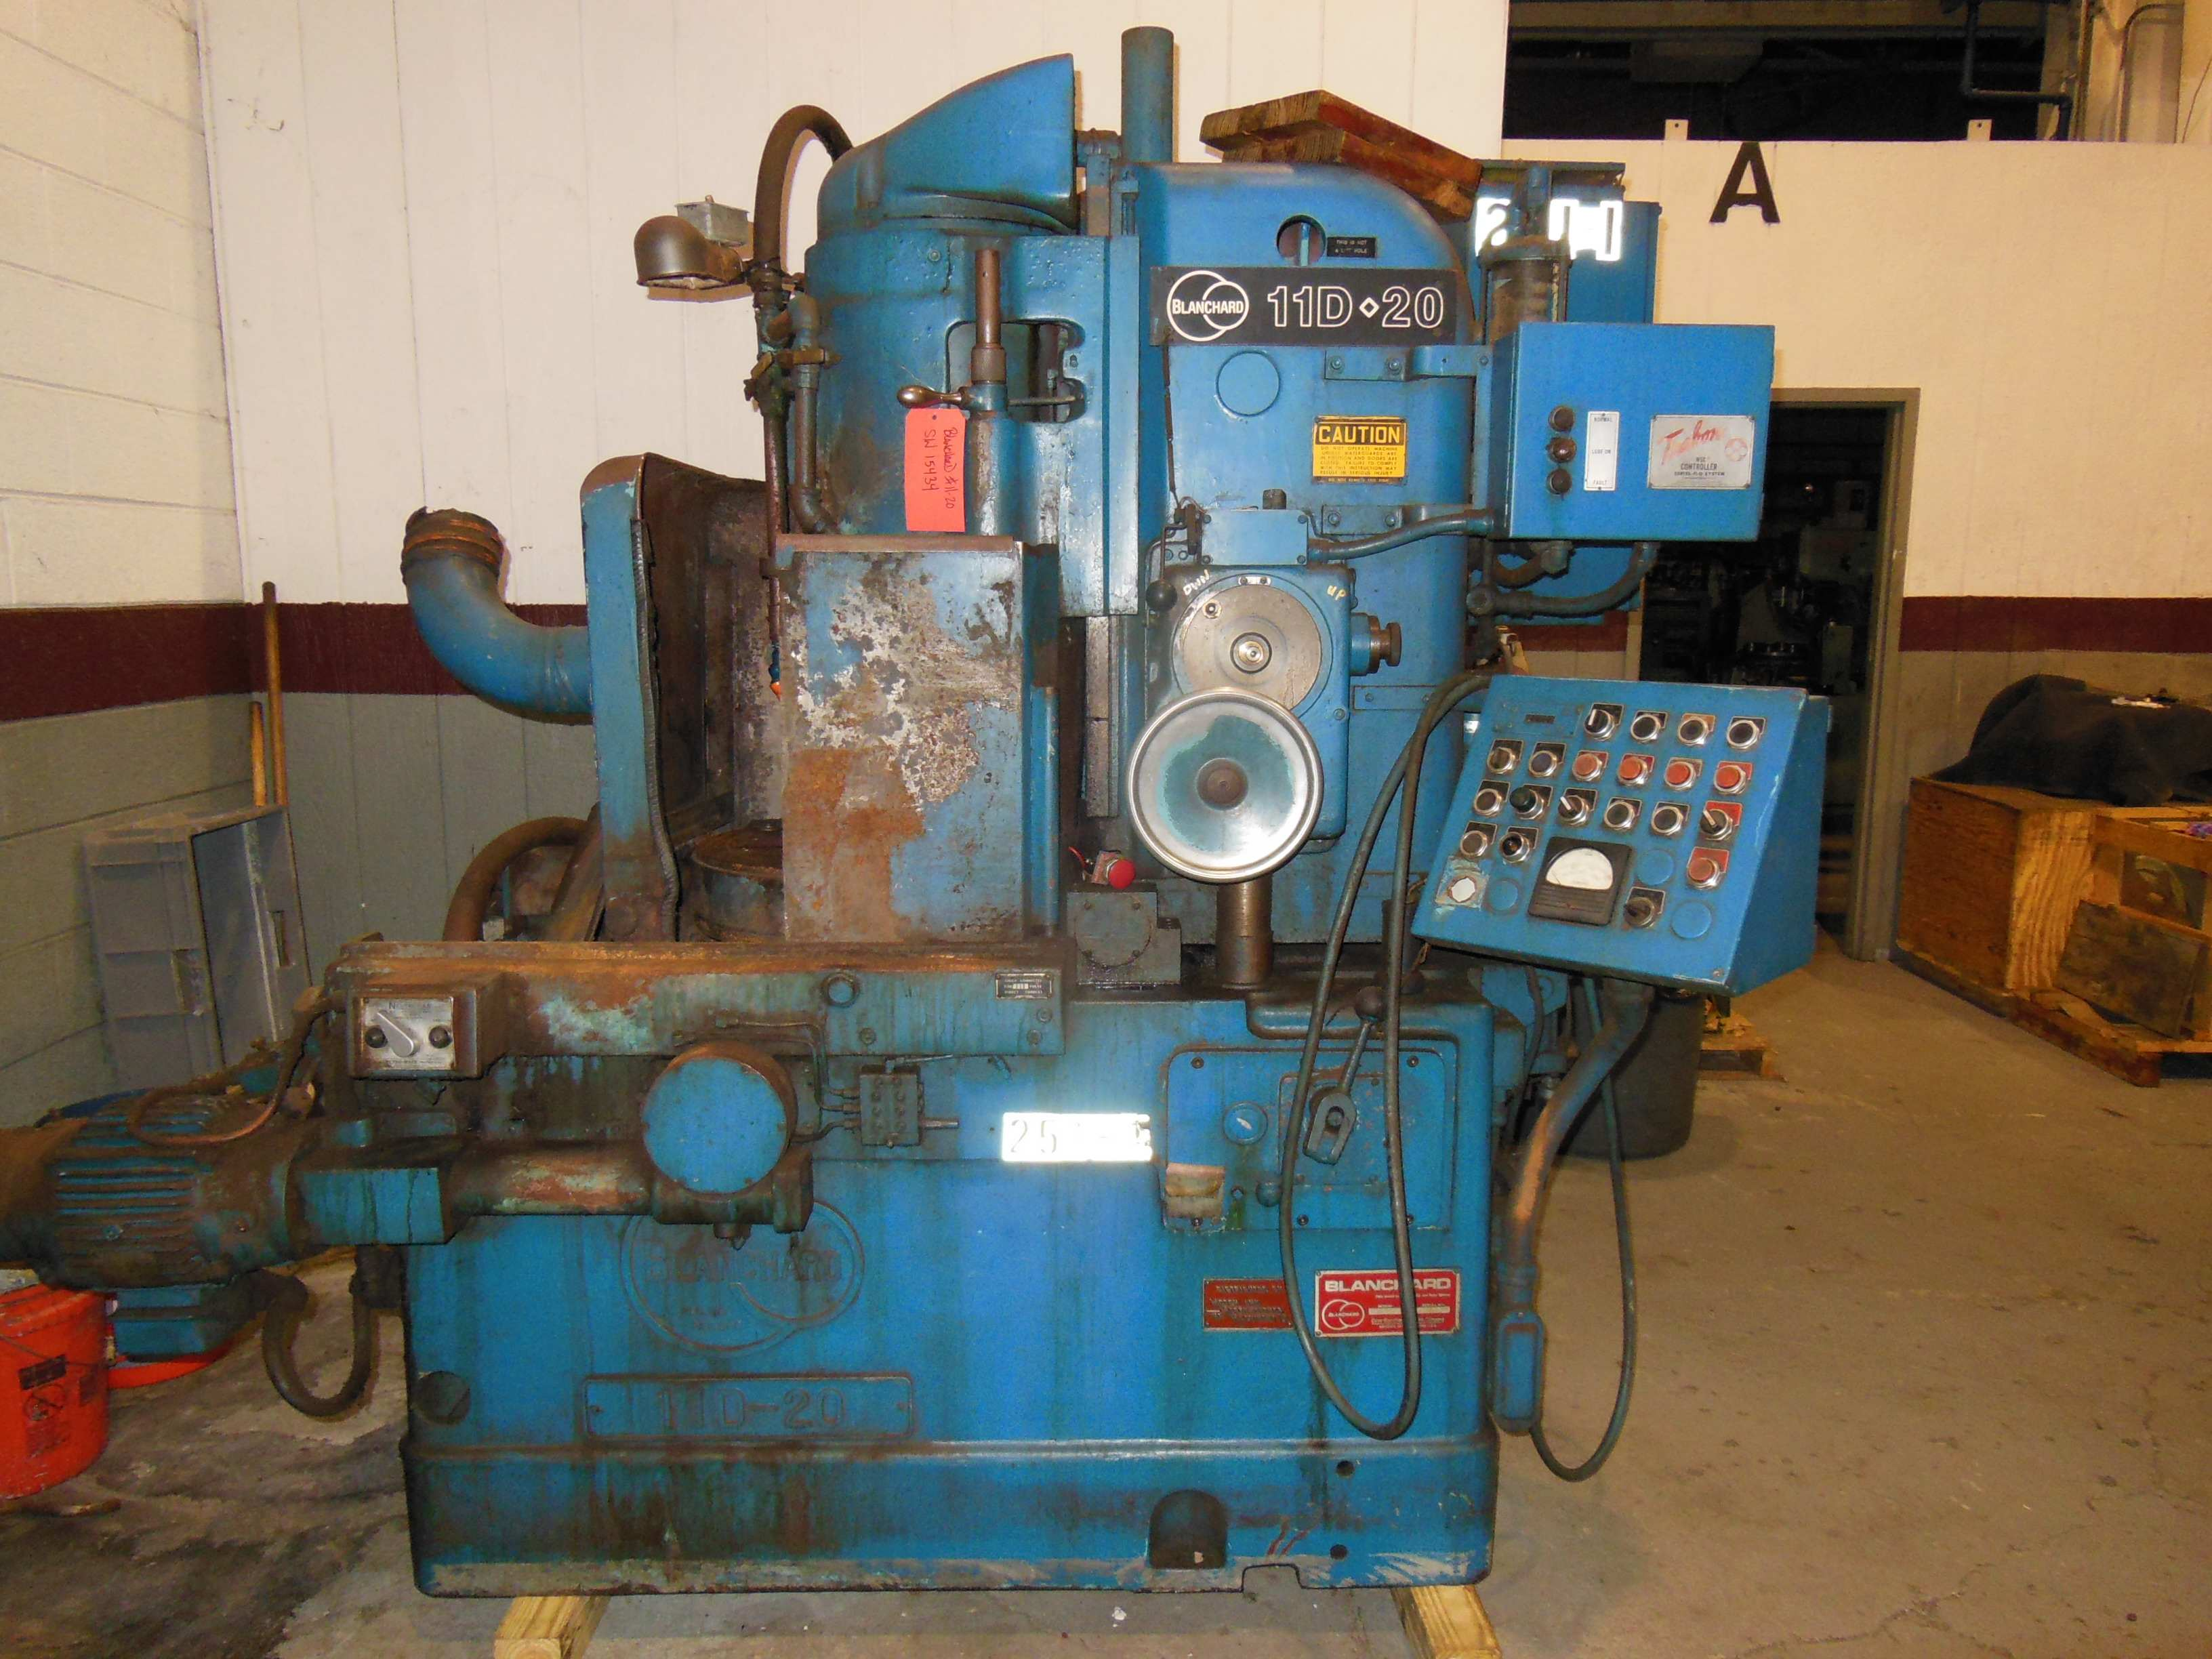 "11D-20 BLANCHARD ROTARY SURFACE GRINDER, 20"" VERTICAL SPINDLE, 11"" HIGH OVER 16"" CHUCK, 1981"